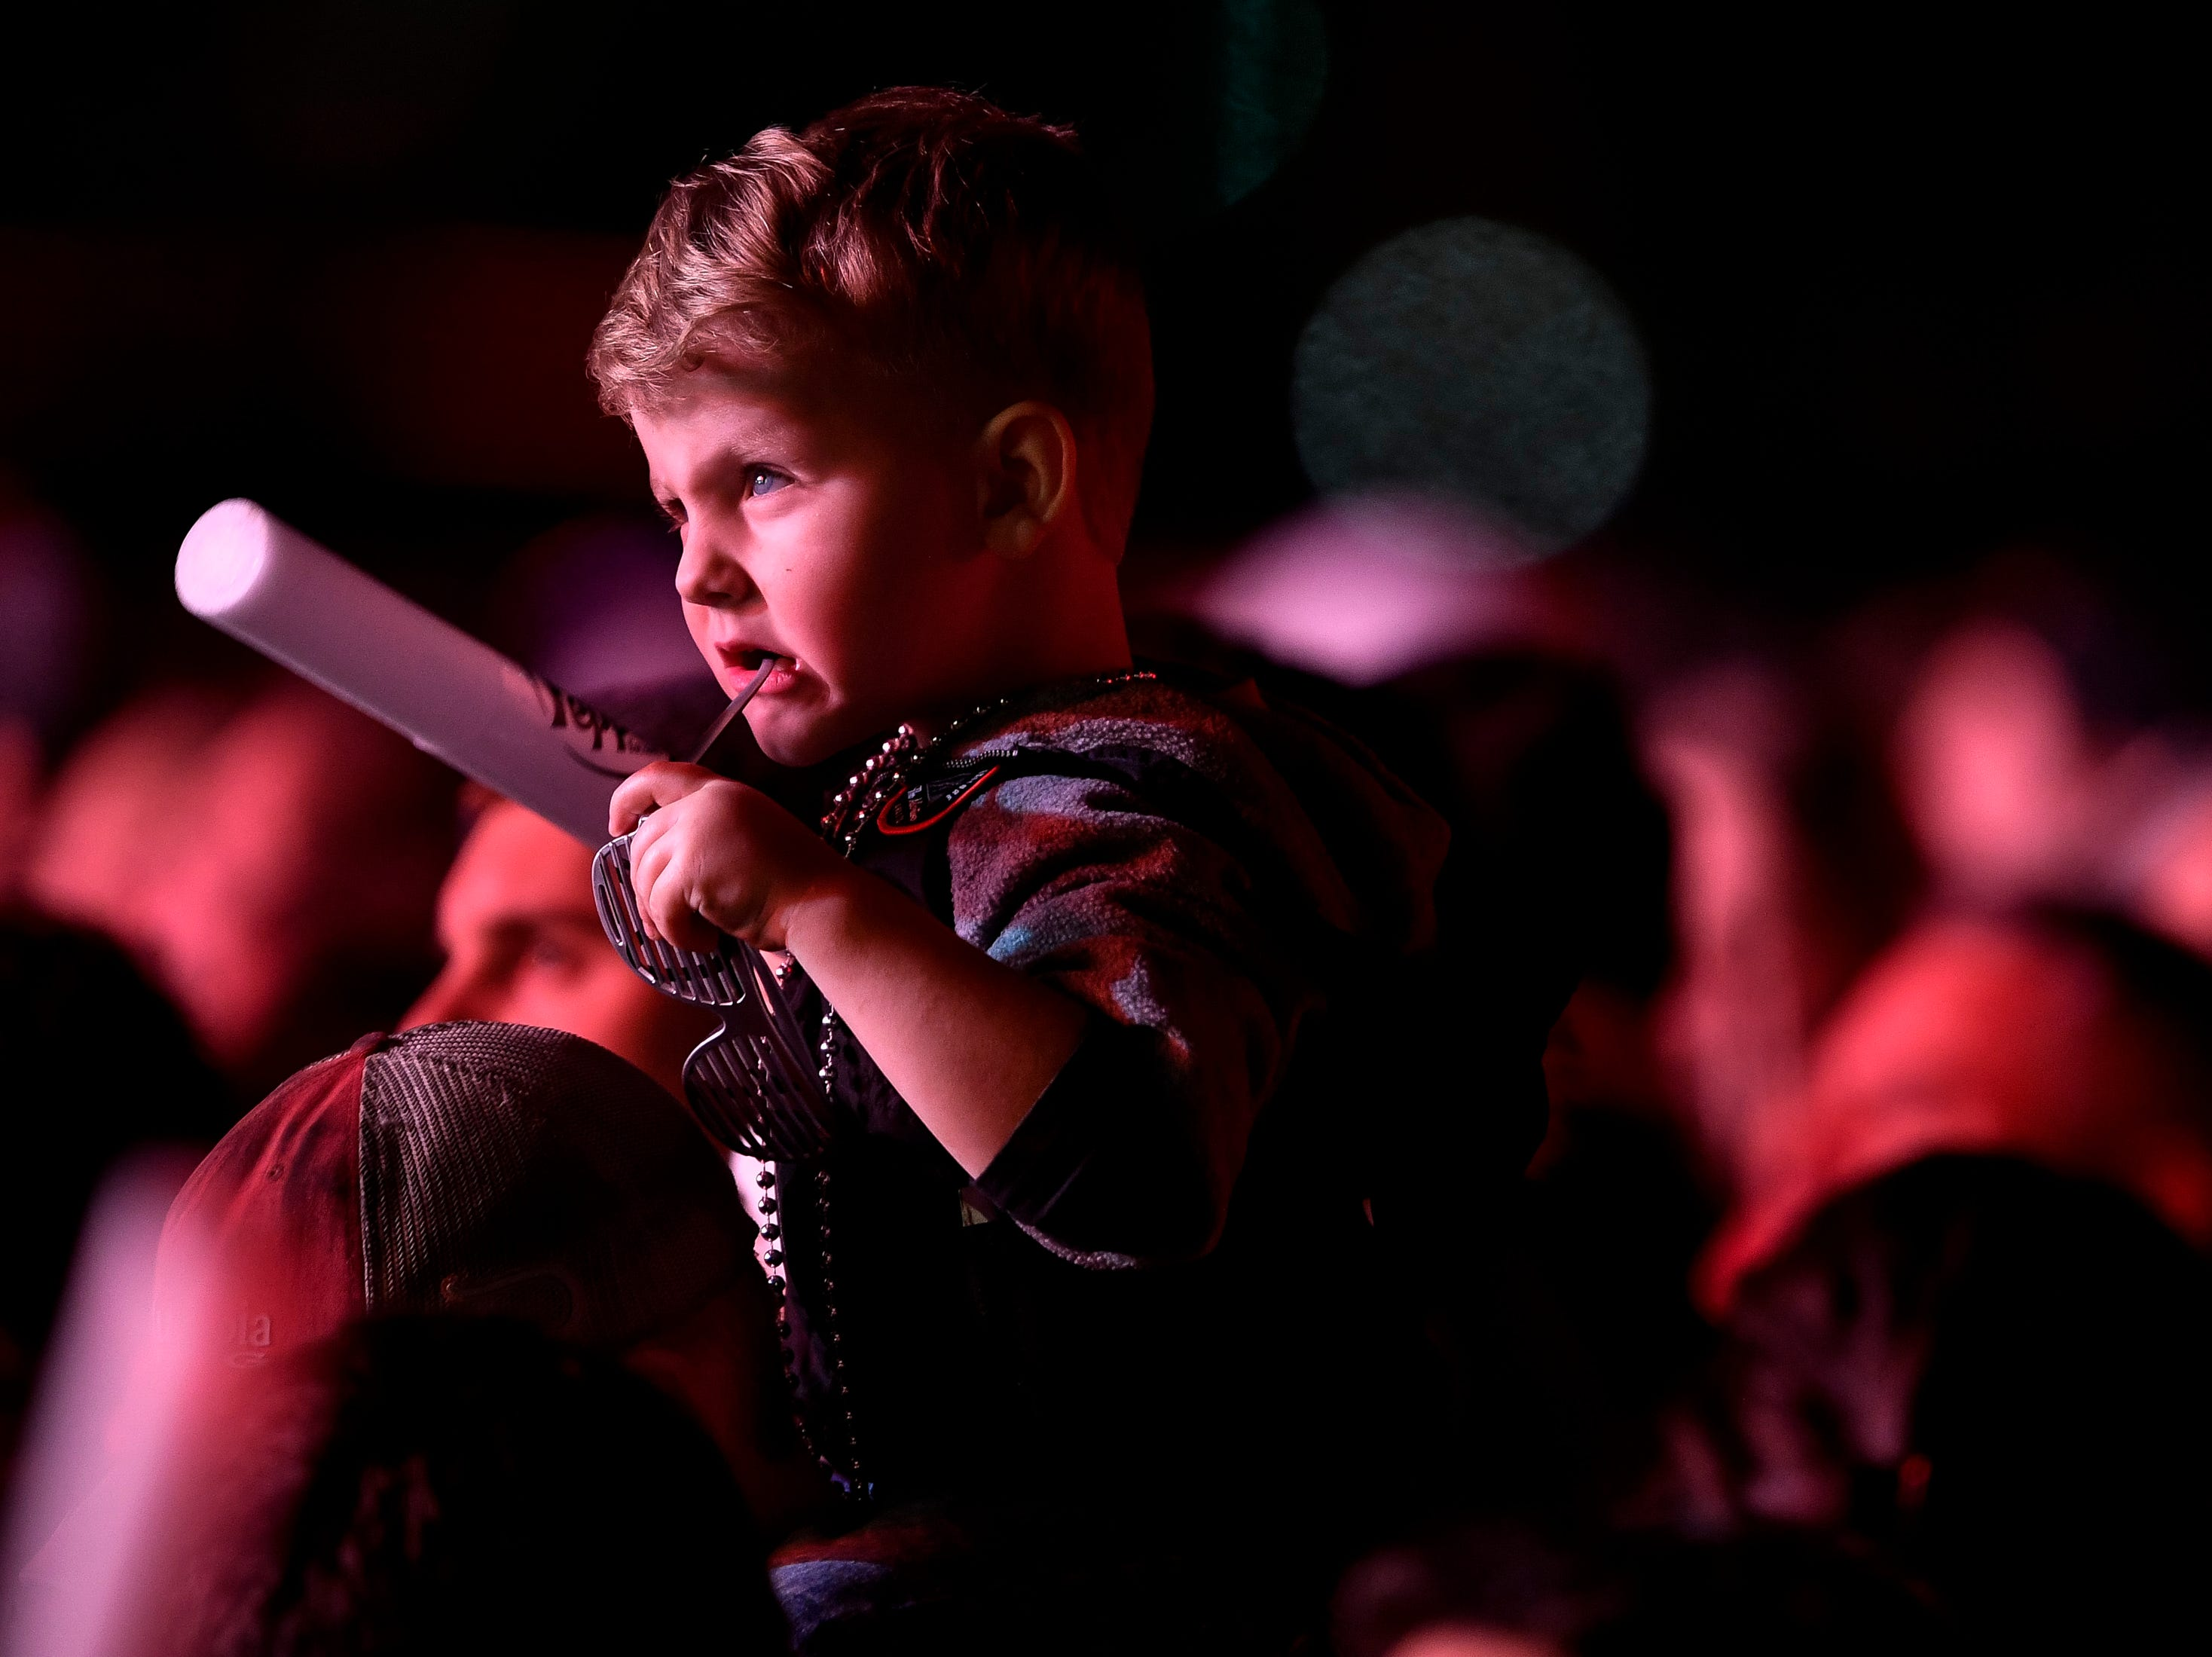 A young fan waits for Peter Frampton to take the stage during the Jack Daniel's Music City Midnight: New Year's Eve event at Bicentennial Capitol Mall State Park in Nashville, Tenn., Monday, Dec. 31, 2018.